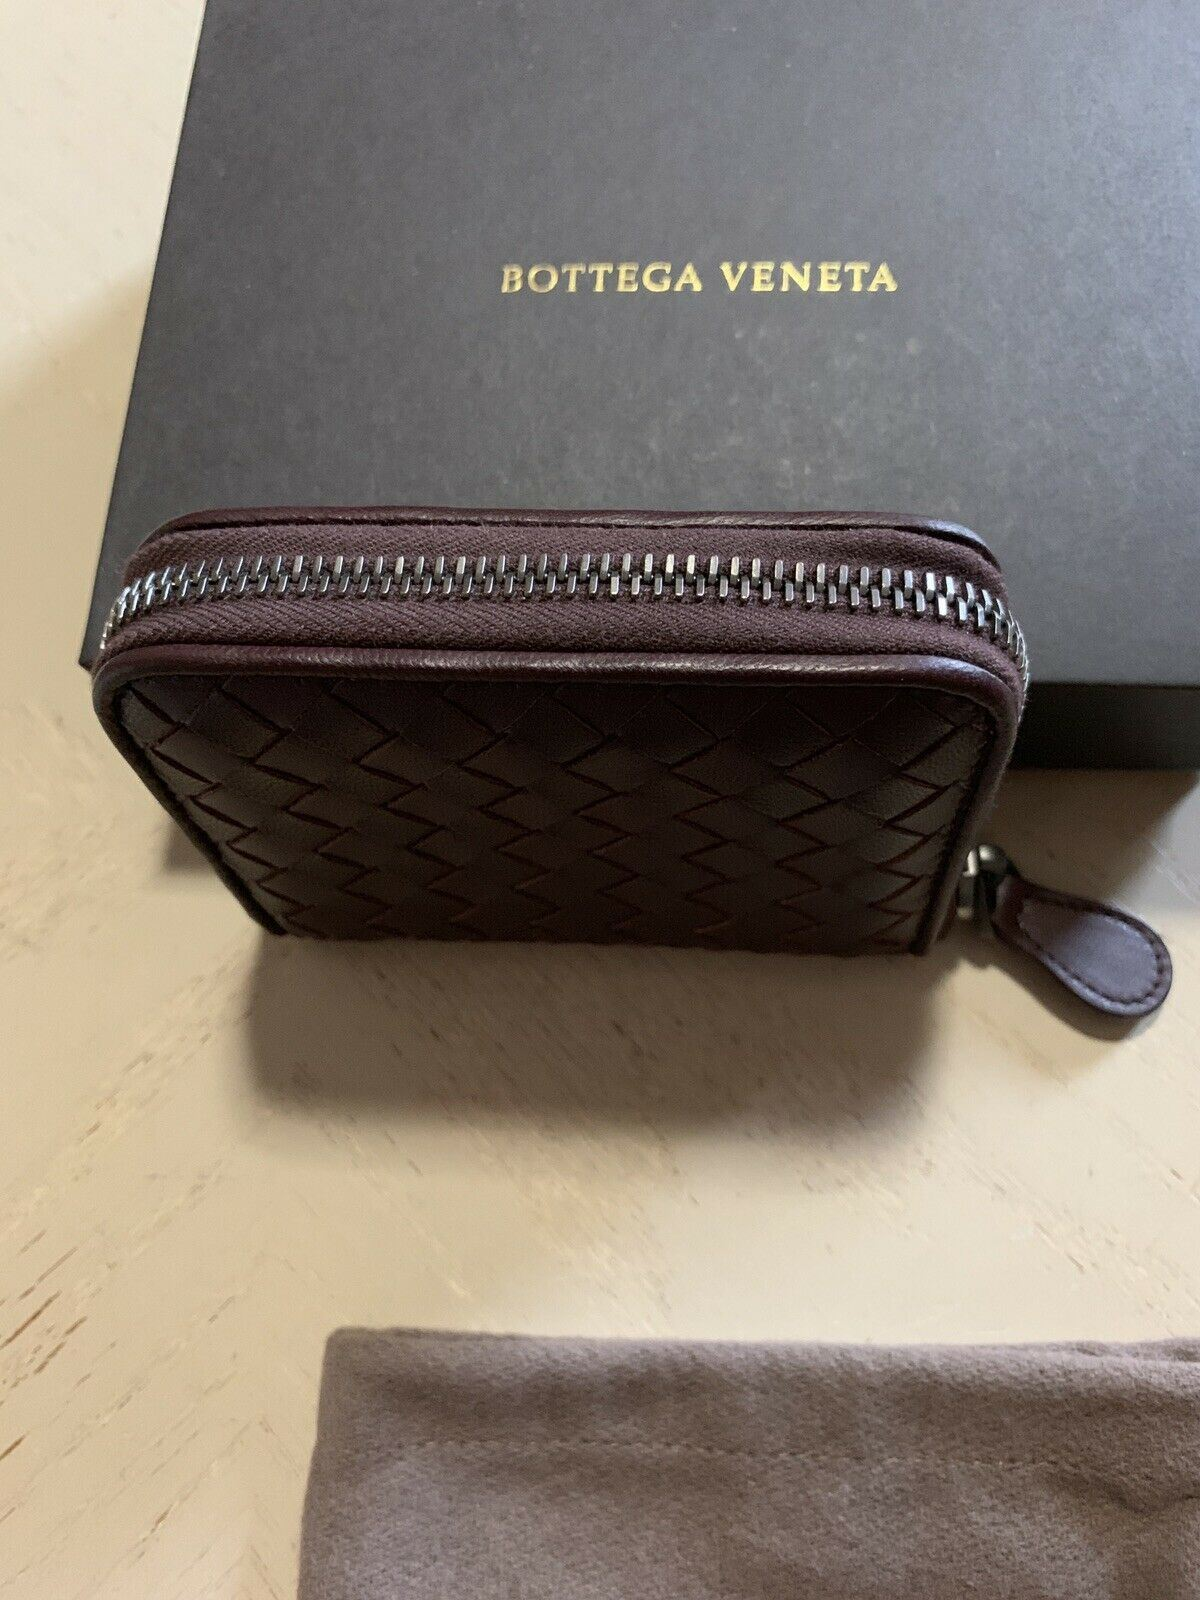 New Bottega Veneta Mens Coin Purse Zipper Wallet Burgundy 258468 Italy